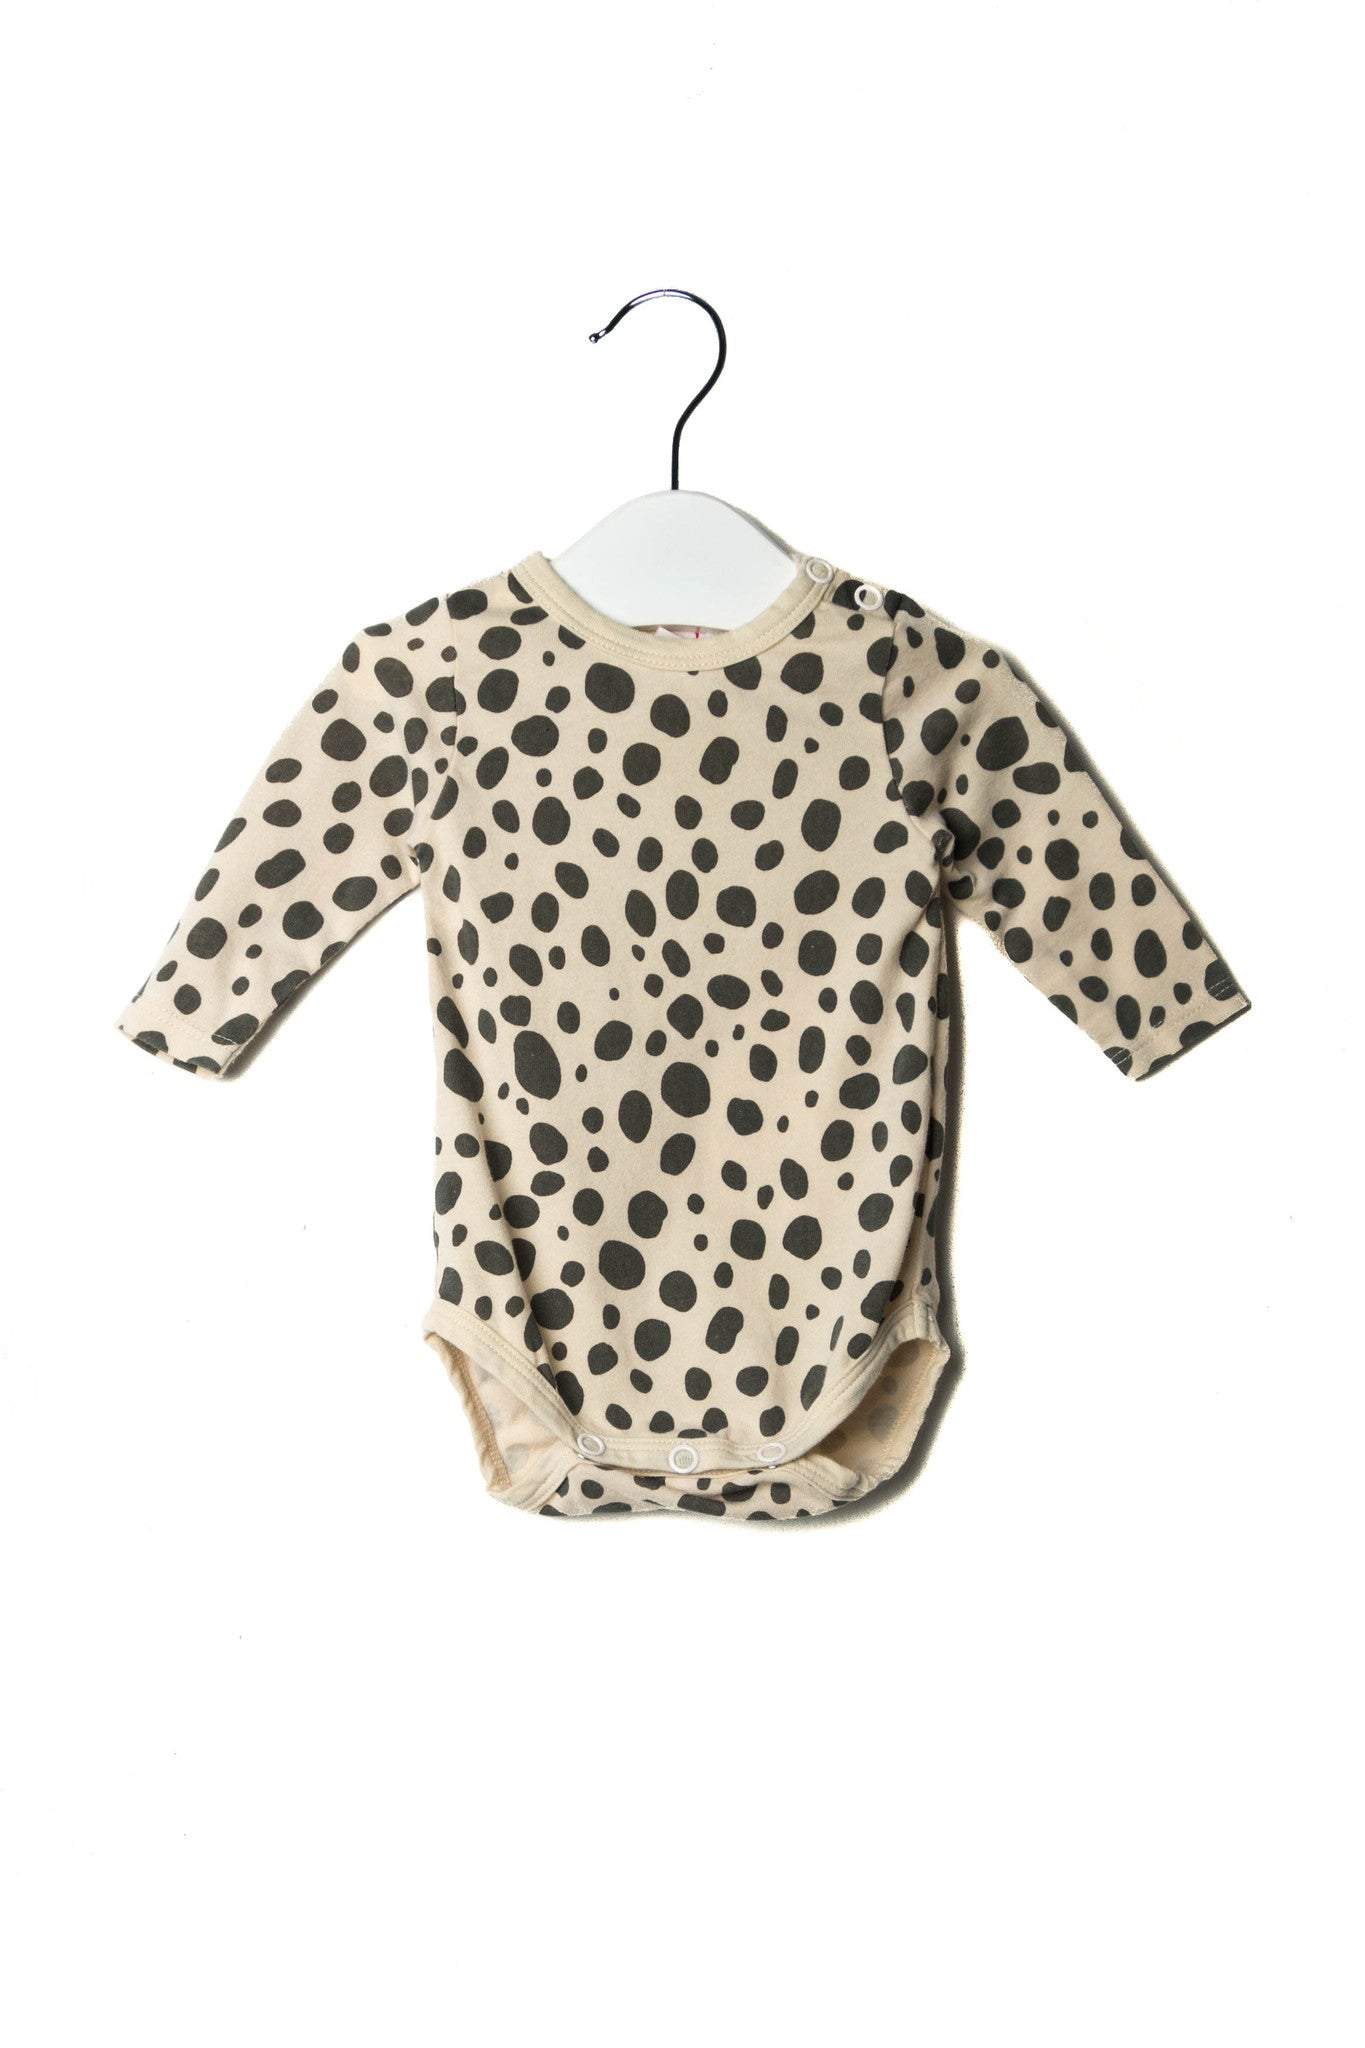 10002480 Seed Baby~Bodysuit NB at Retykle